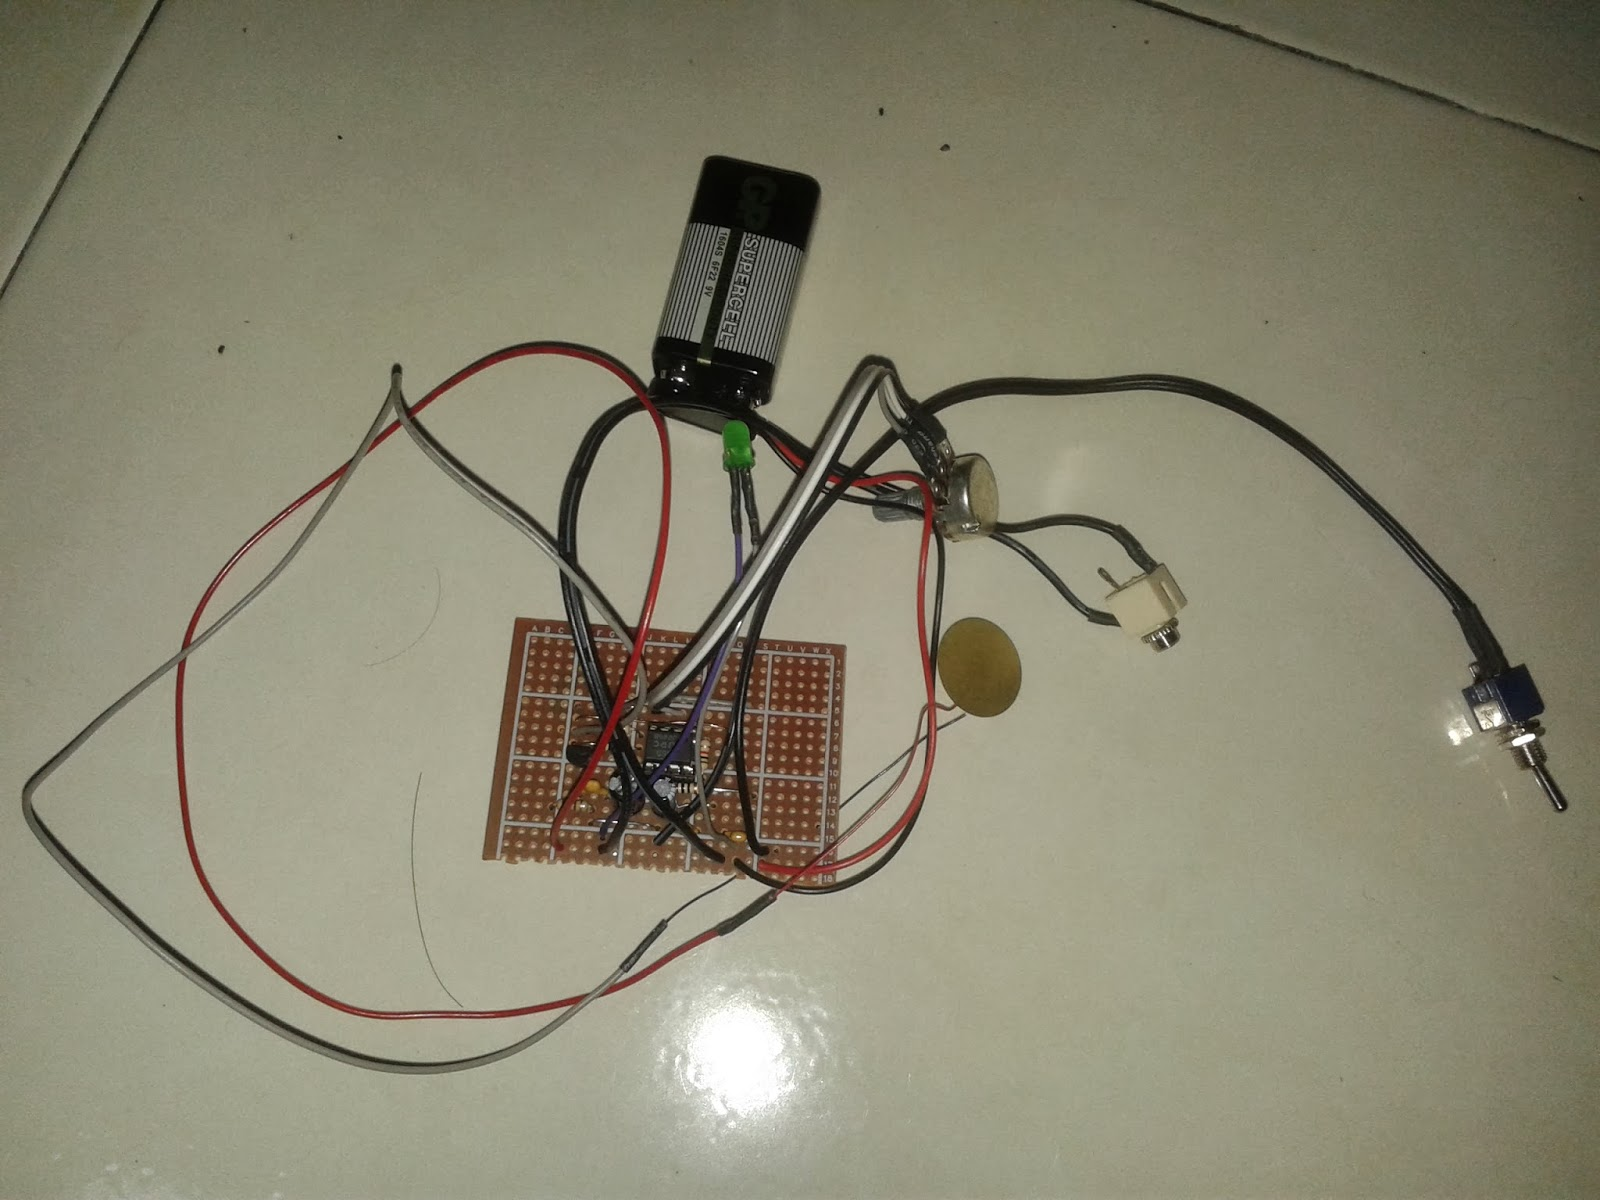 Electronic Stethoscope Using Piezoelectric Sensor Electronics Project Designing Engineering This Week Im Completing My Final Year By Placing The Circuit In Enclosure Drill Holes For Mono Jack Switch And Control